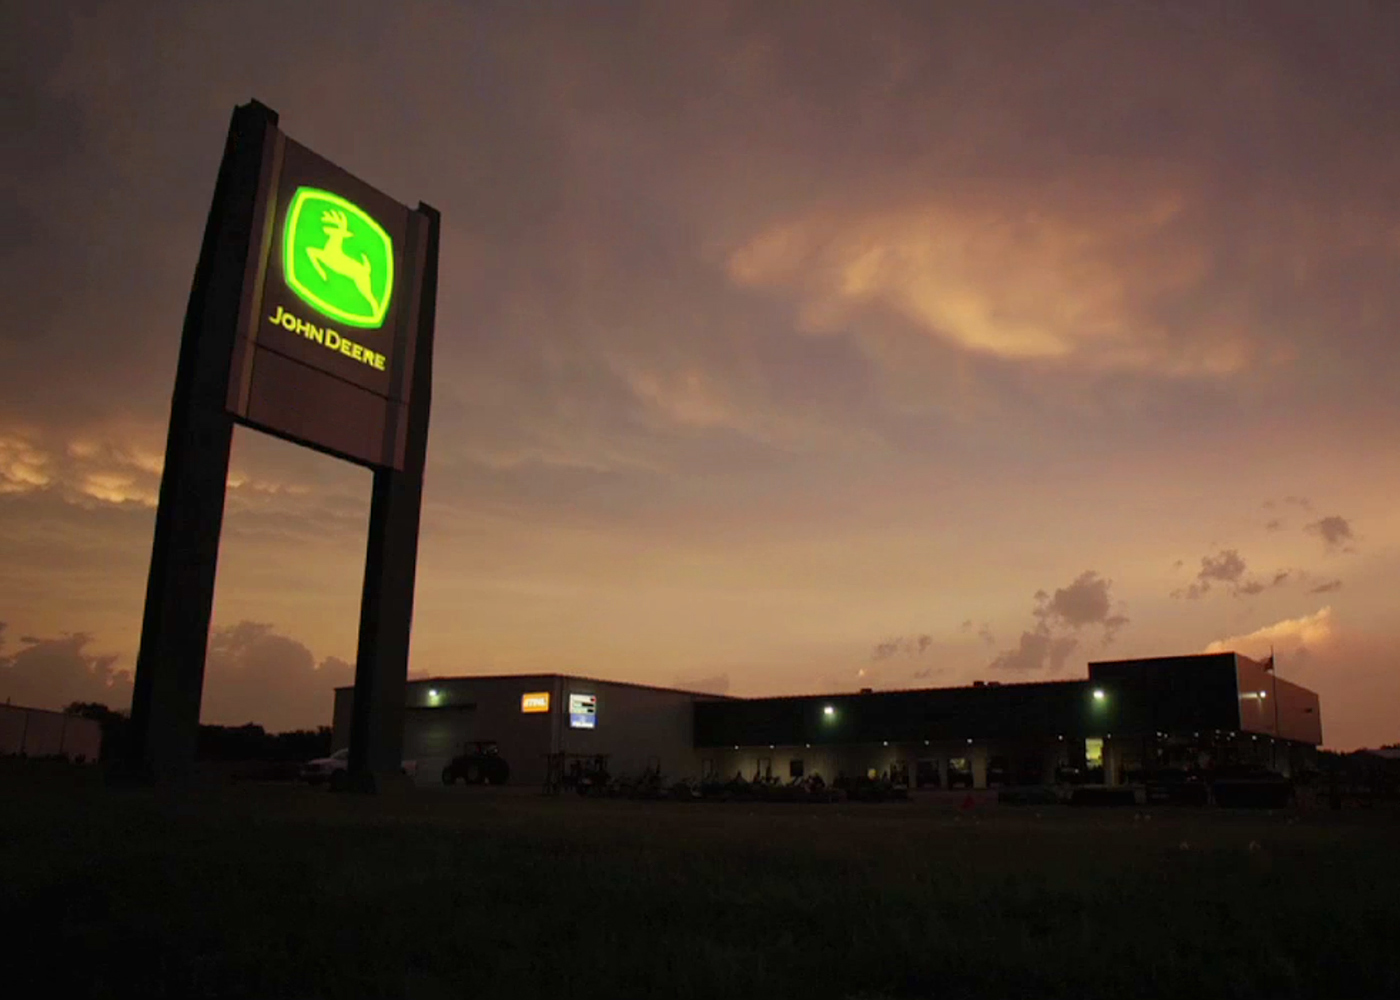 John Deere Dealership at Night